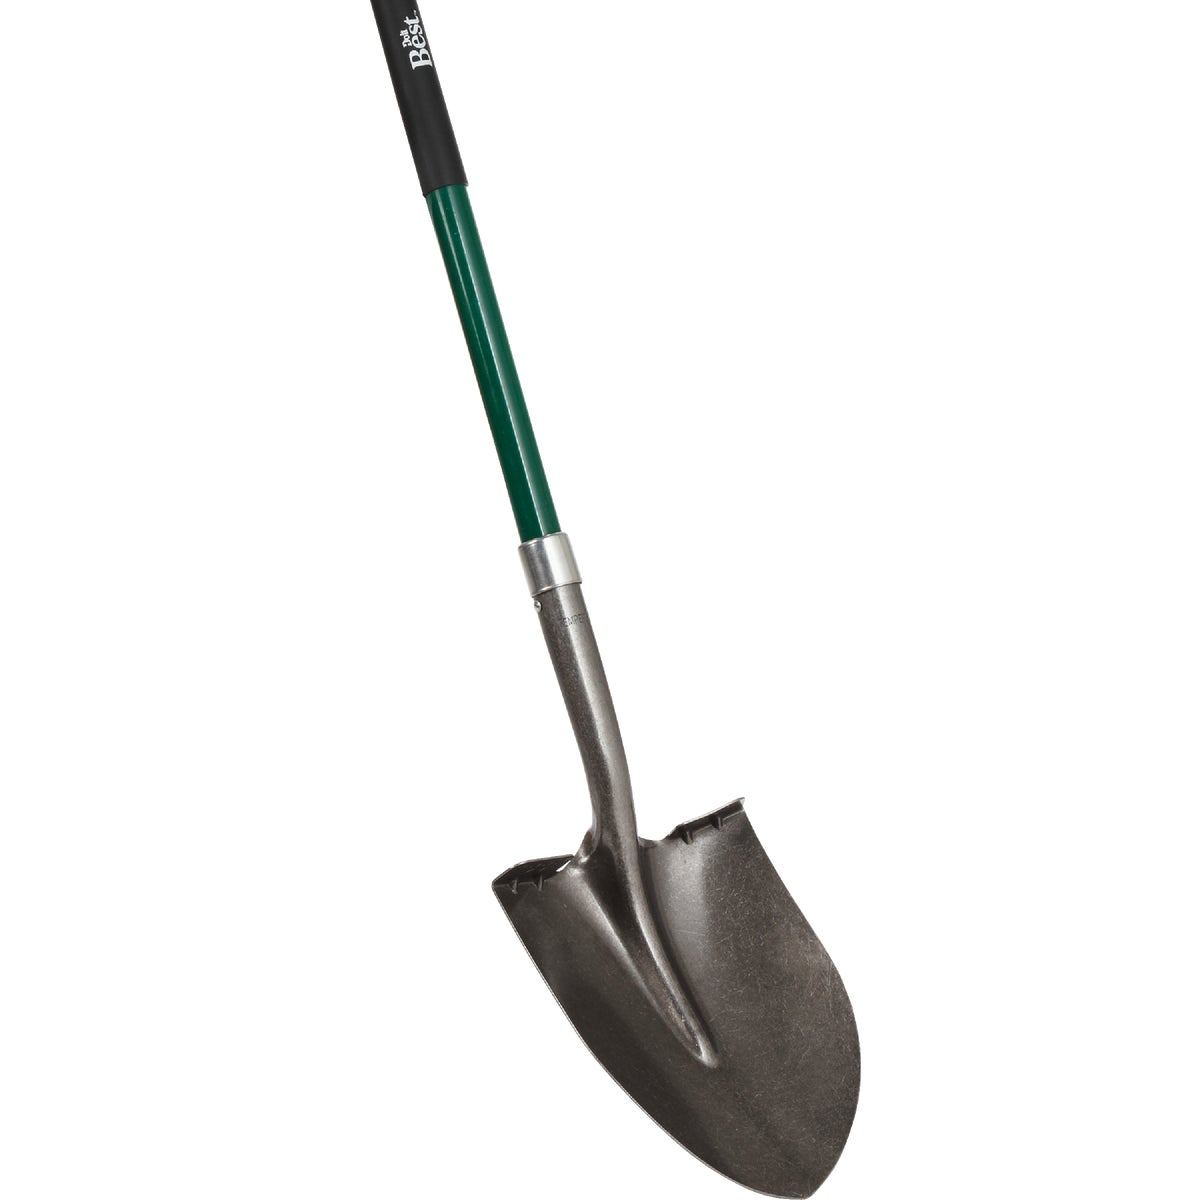 LONG HDL RND PT SHOVEL